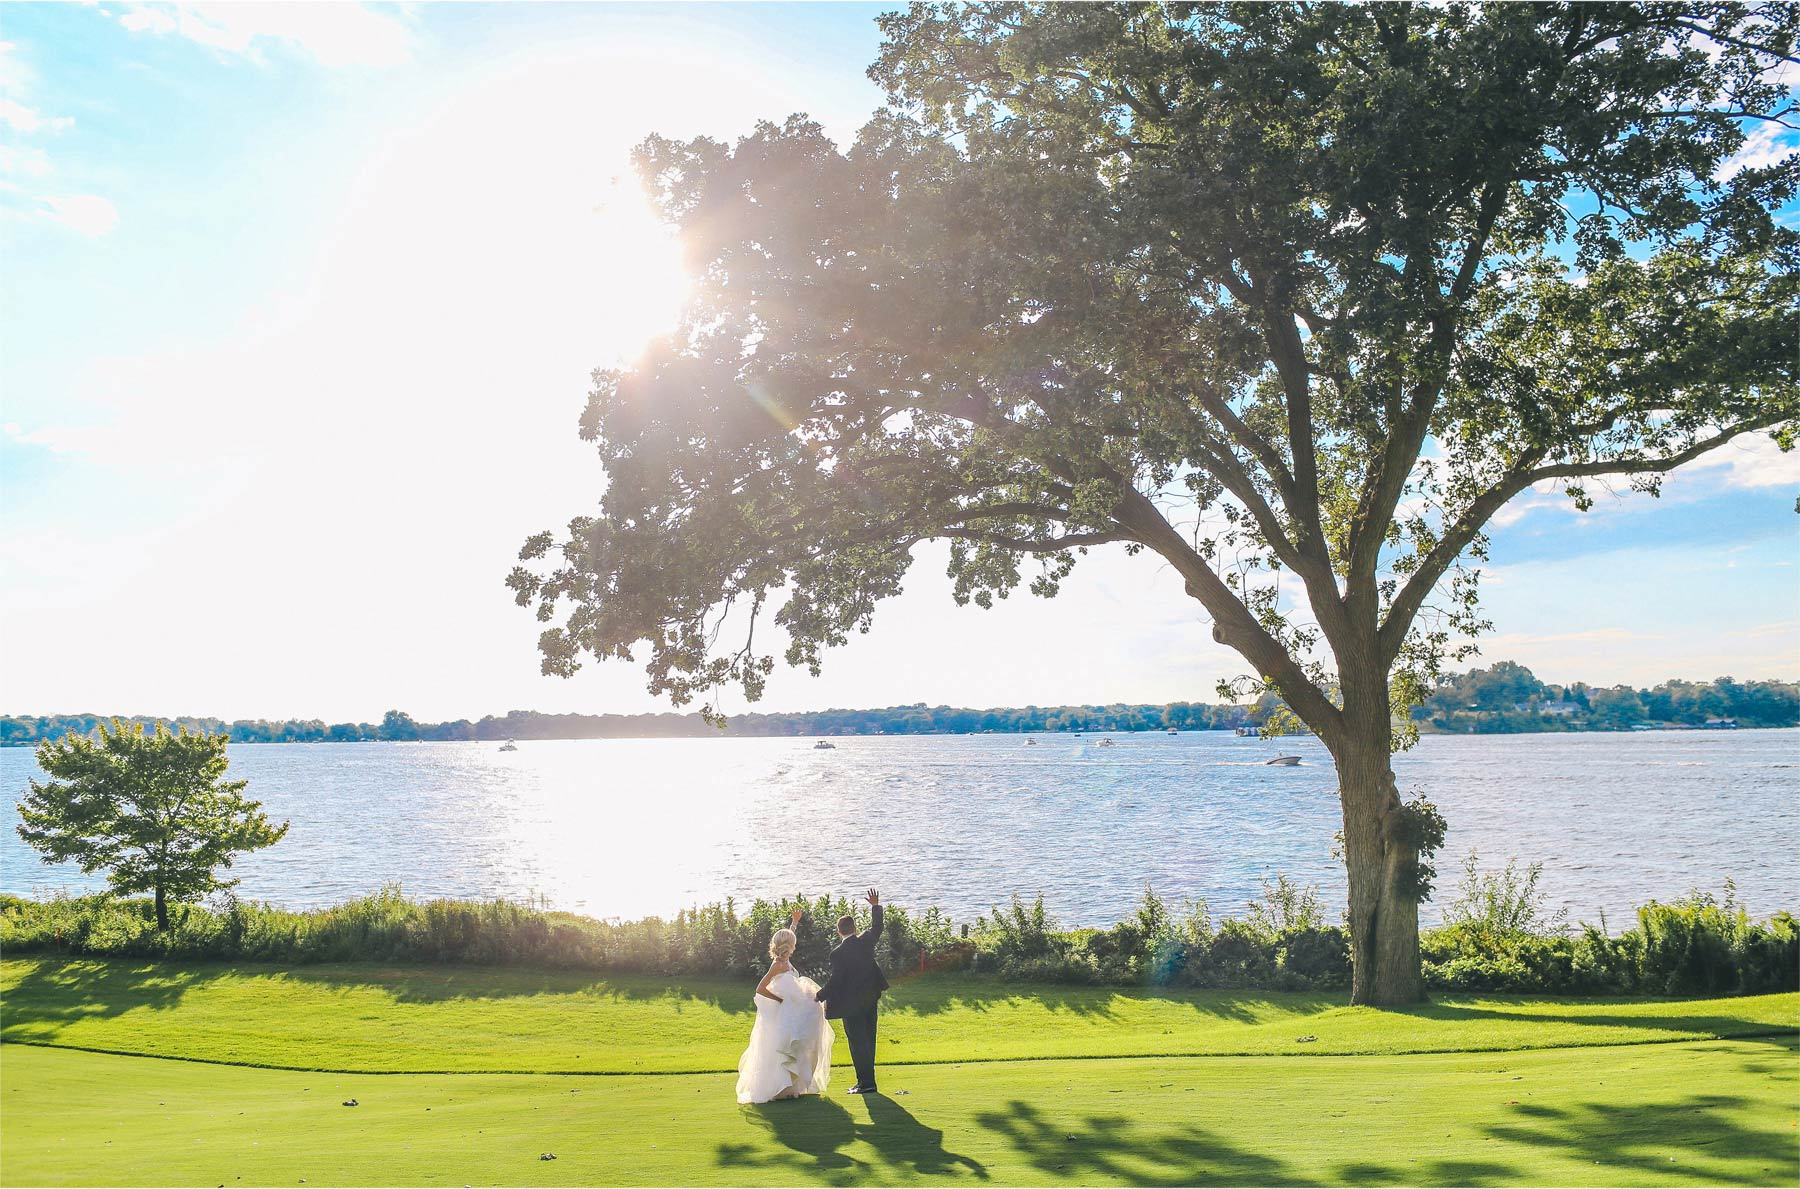 17-Minnetonka-Beach-Minnesota-Wedding-Photographer-by-Andrew-Vick-Photography-Summer-Lake-Lafayette-Club-Bride-Groom-Waving-Golf-Course-Emily-and-Jay.jpg